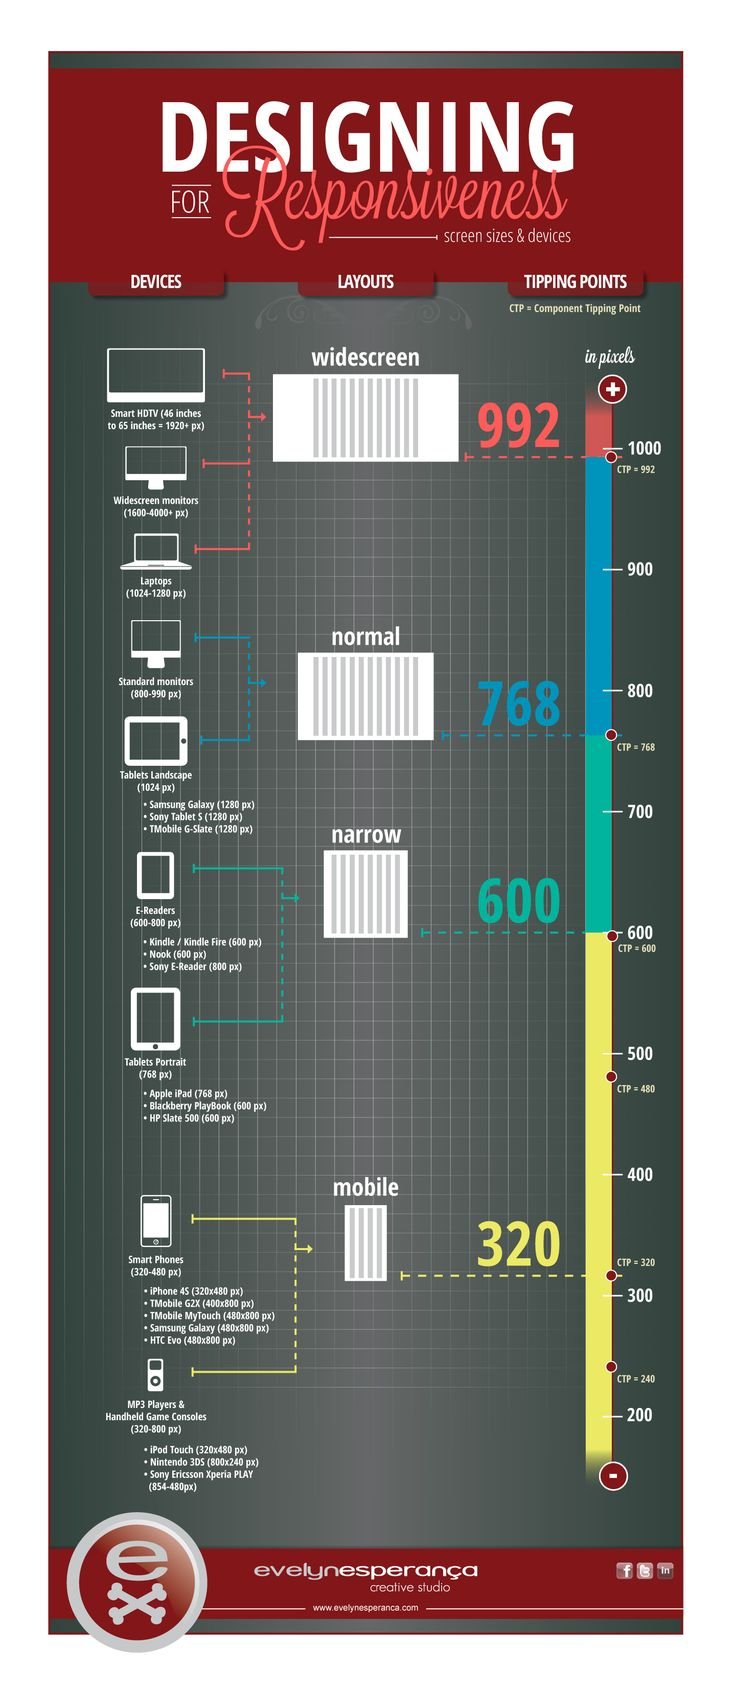 responsive design devices chart